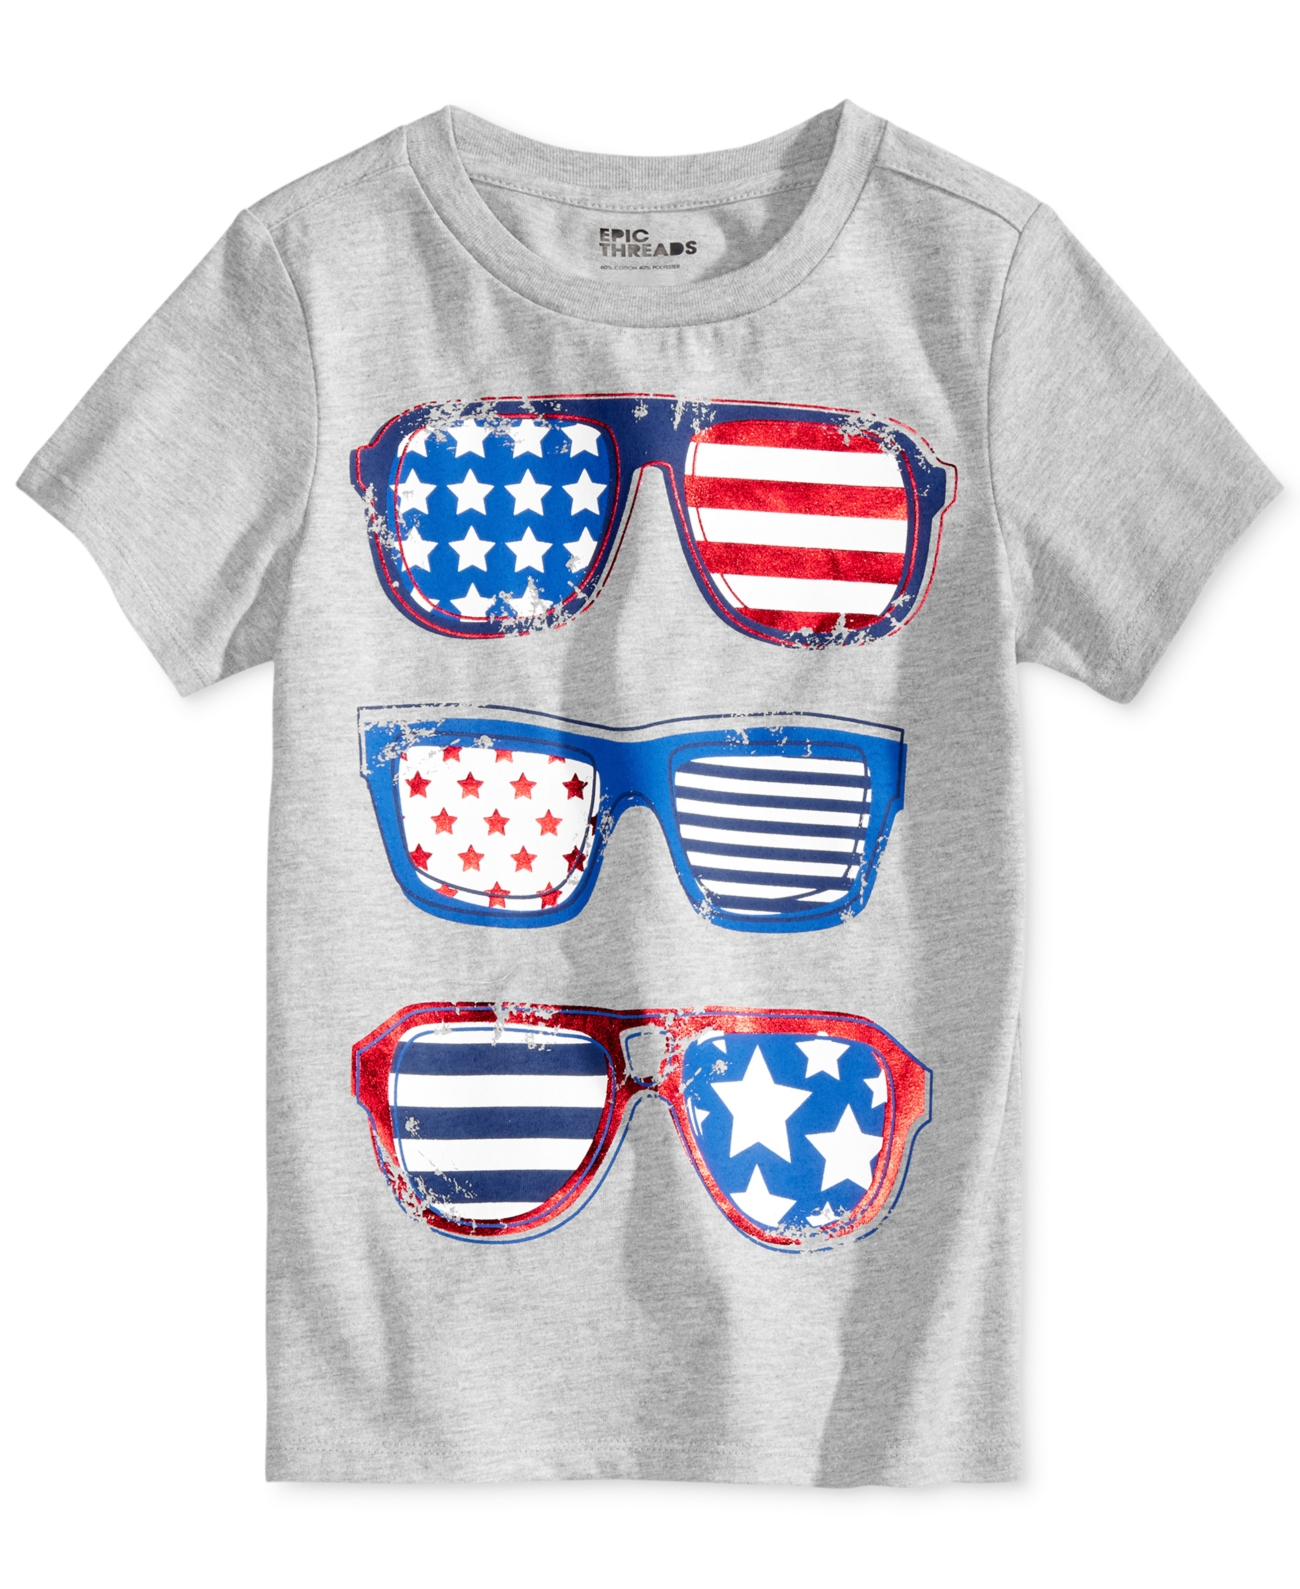 Epic Threads Boys Toddler /& Little Graphic-Print T-Shirts